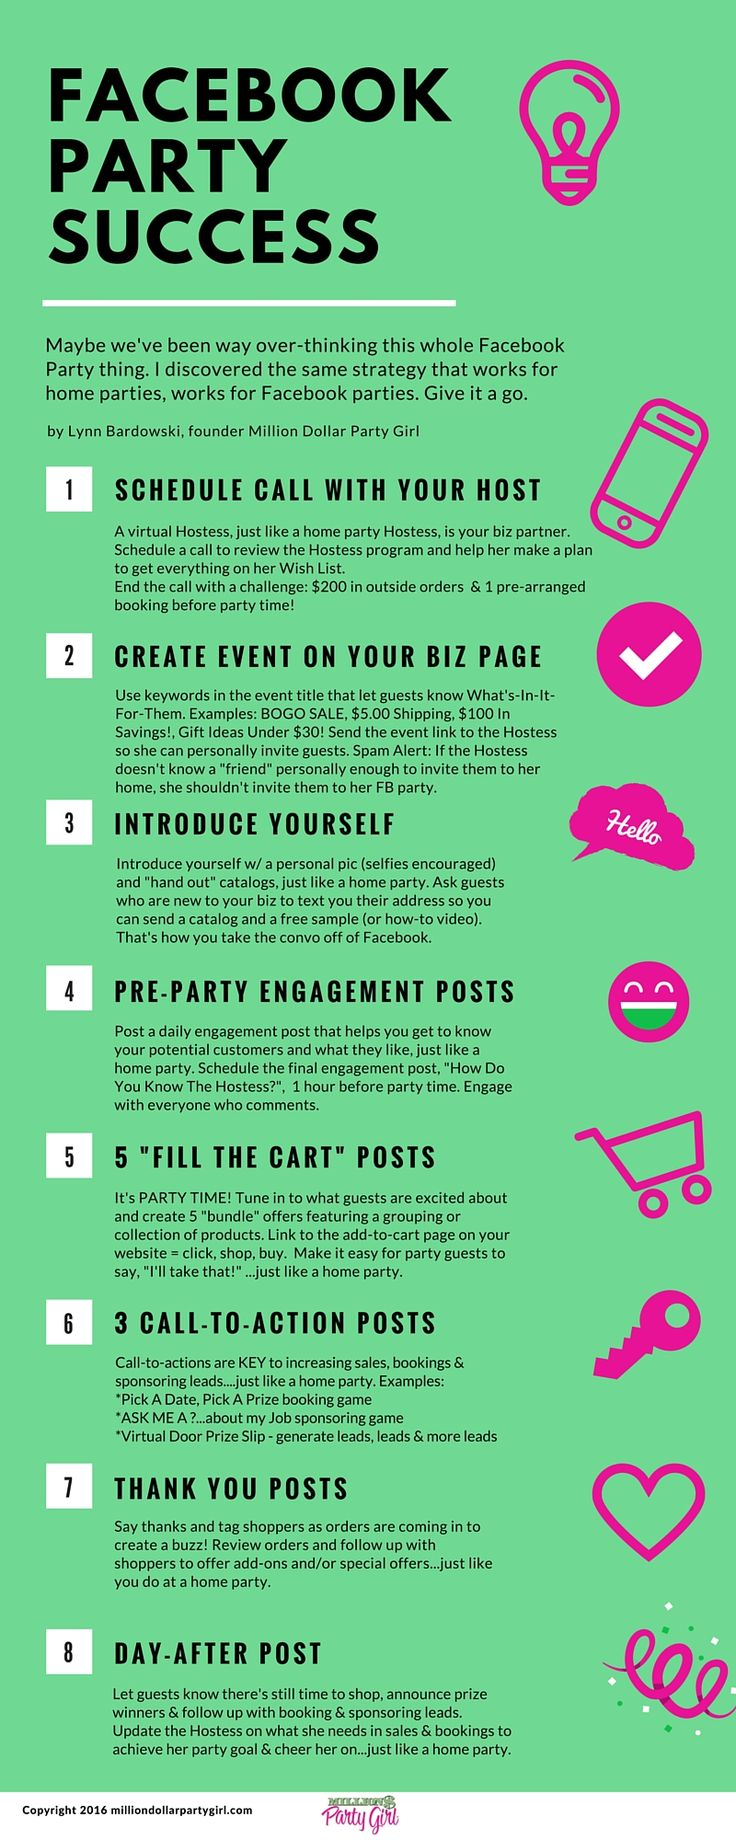 Save this Facebook Party infographic for a simple-to-follow 8 step formula to holding successful Facebook Parties. You'll want to share this one with your team! Have a FREE party, shop online, or join my team! Contact me today! Pure Romance by Hannah  www.pureromance.com/HannahHenson  Hannah.PRParty@gmail.com